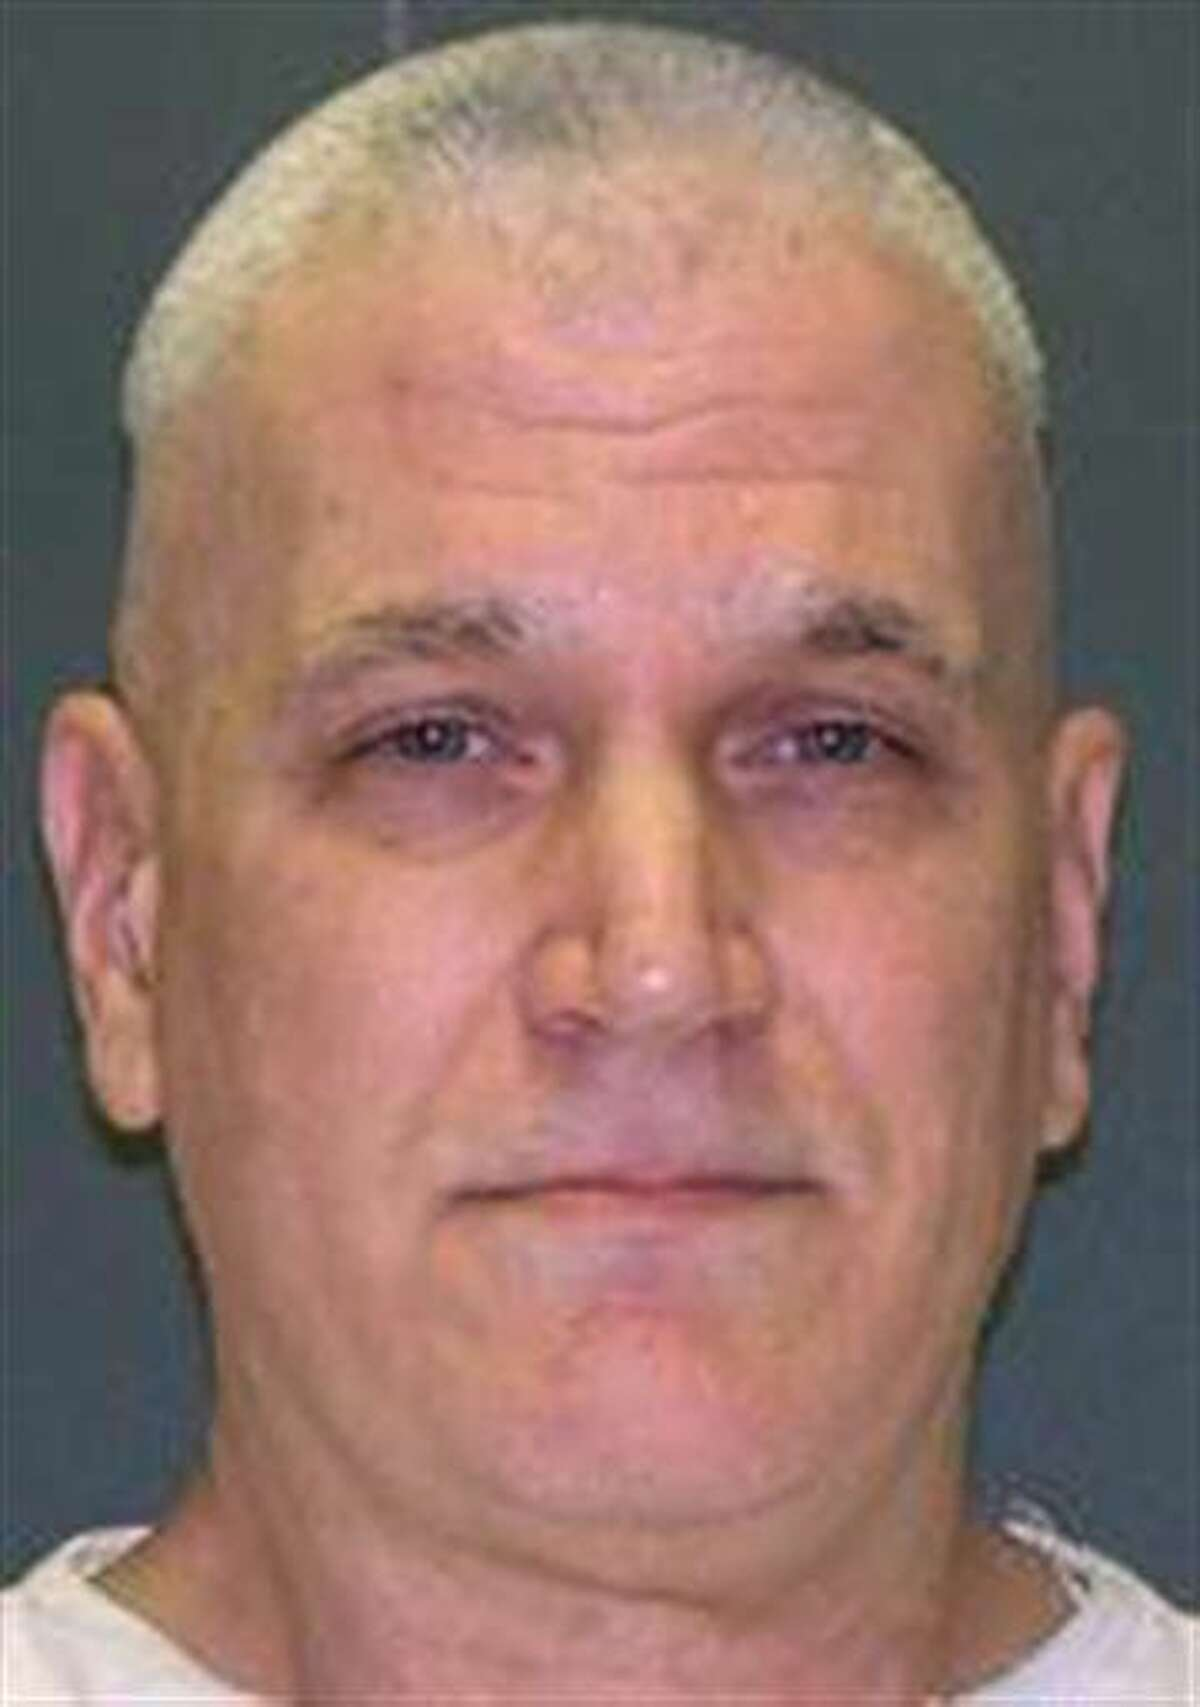 This undated handout photo provided by the Texas Department of Criminal Justice shows John David Battaglia. Enraged over his ex-wife going to police about his repeated harassment and likely arrest, Battaglia used a May 2001 visit with their two young daughters to avenge his anger. As their mother helplessly listened on the phone to one of the girls' cries, he fatally shot them both at his Dallas apartment. On Wednesday, March 30, 2016, Battaglia is set for lethal injection for the slayings. (Texas Department of Criminal Justice via AP)